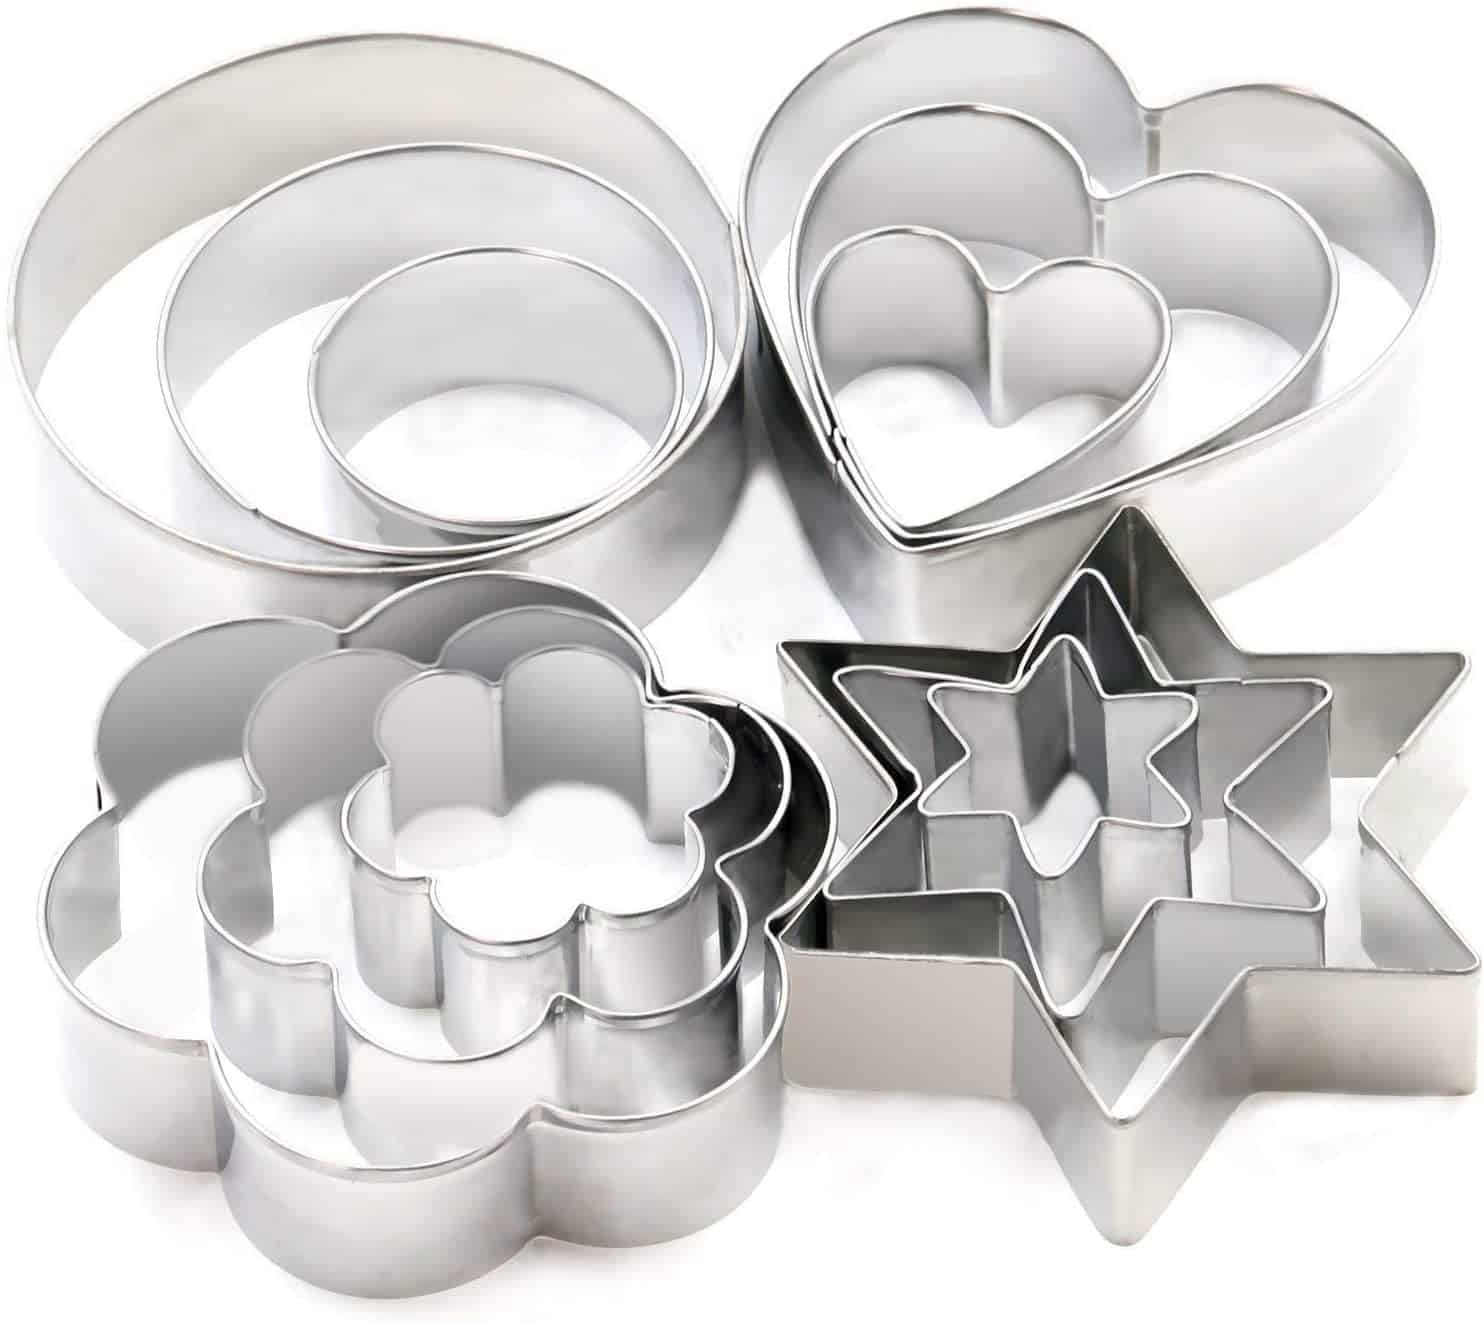 A Beautiful Cookie Cutter That Impresses Everyone!